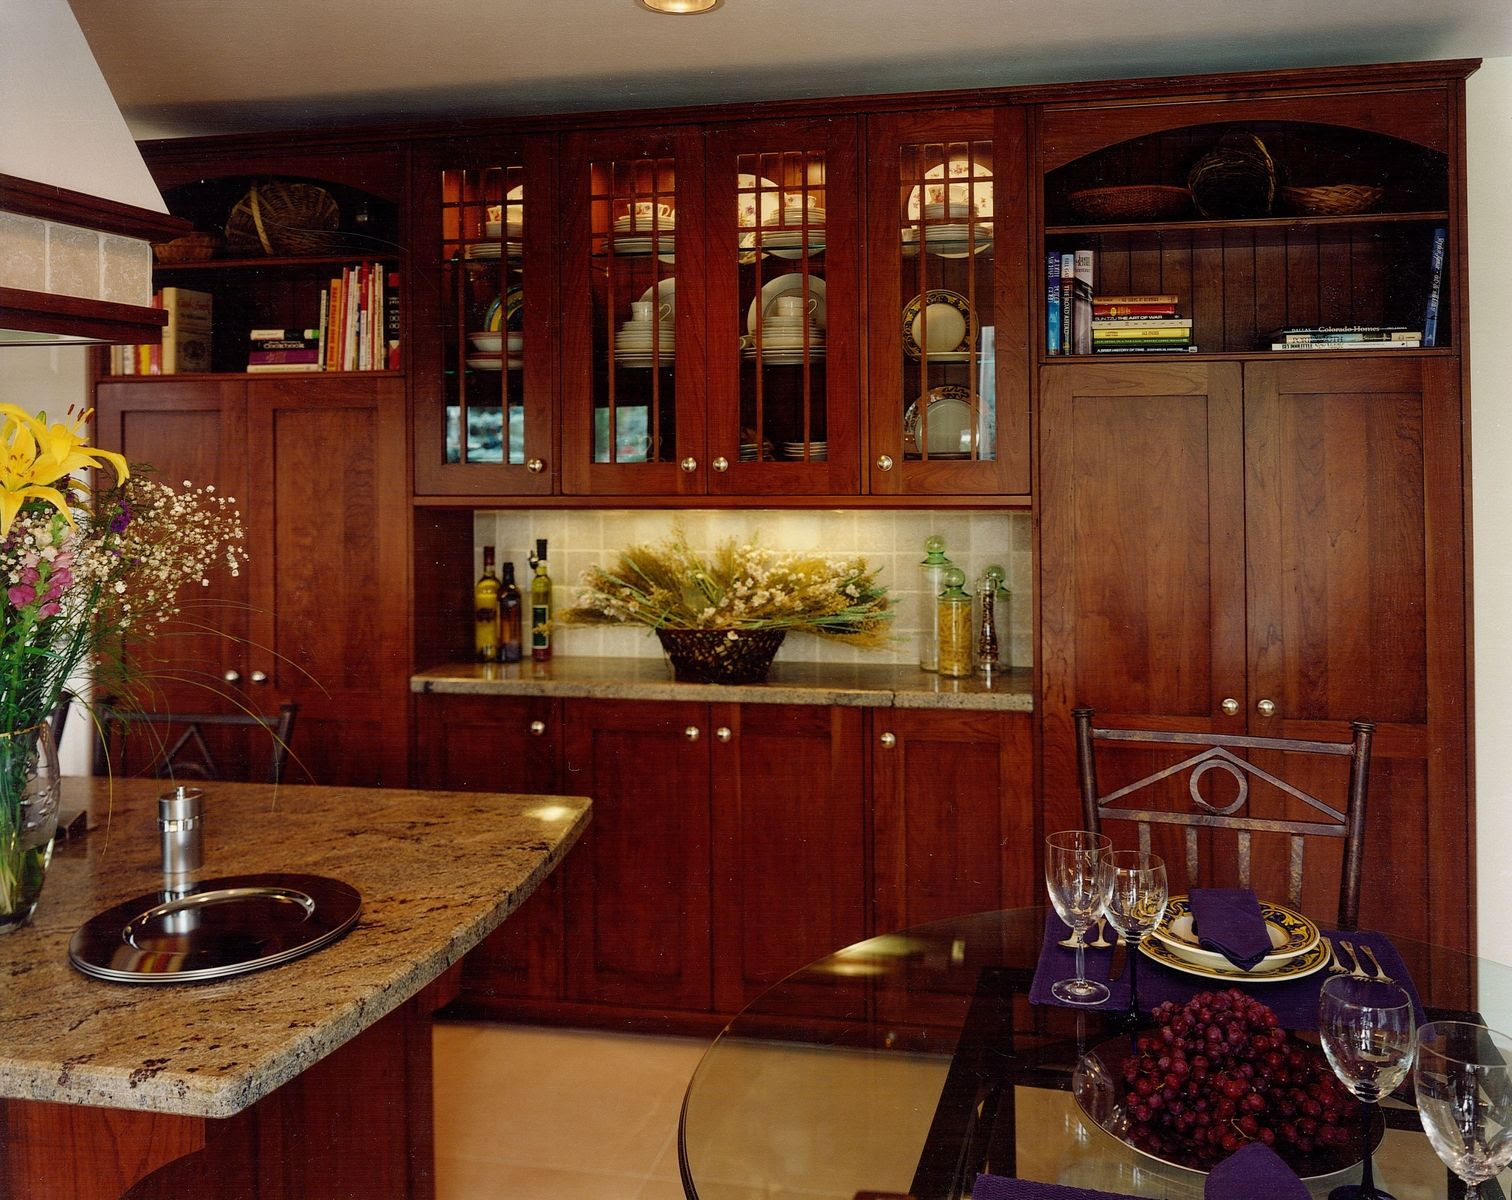 Hand Made Arts & Crafts Kitchen Remodel Of Cherry Wood by ...